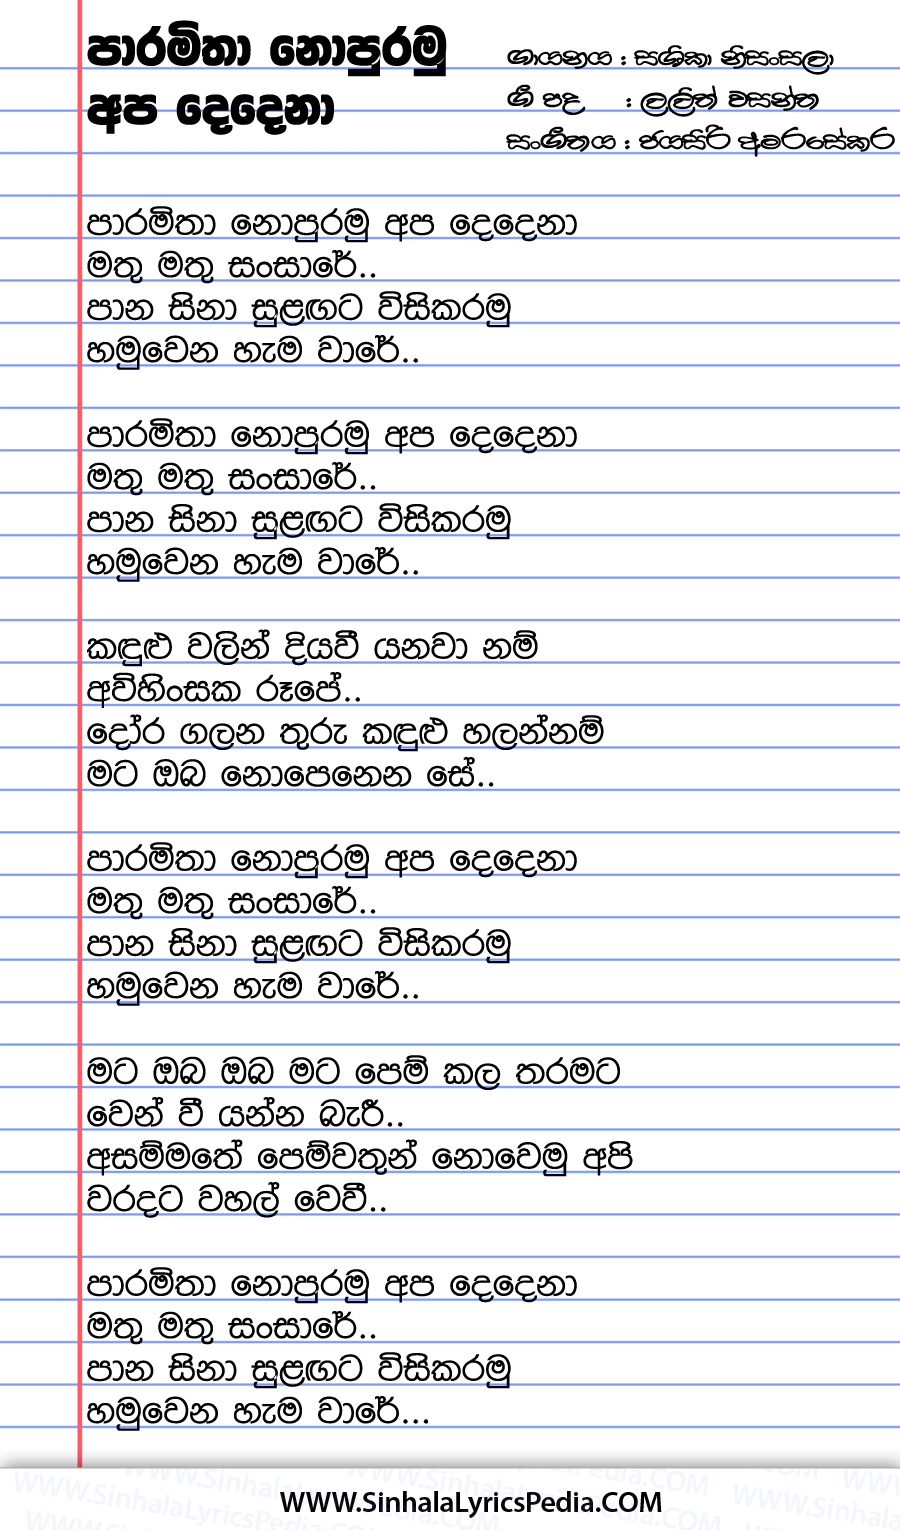 Paramitha Nopuramu Apa Dedena Song Lyrics